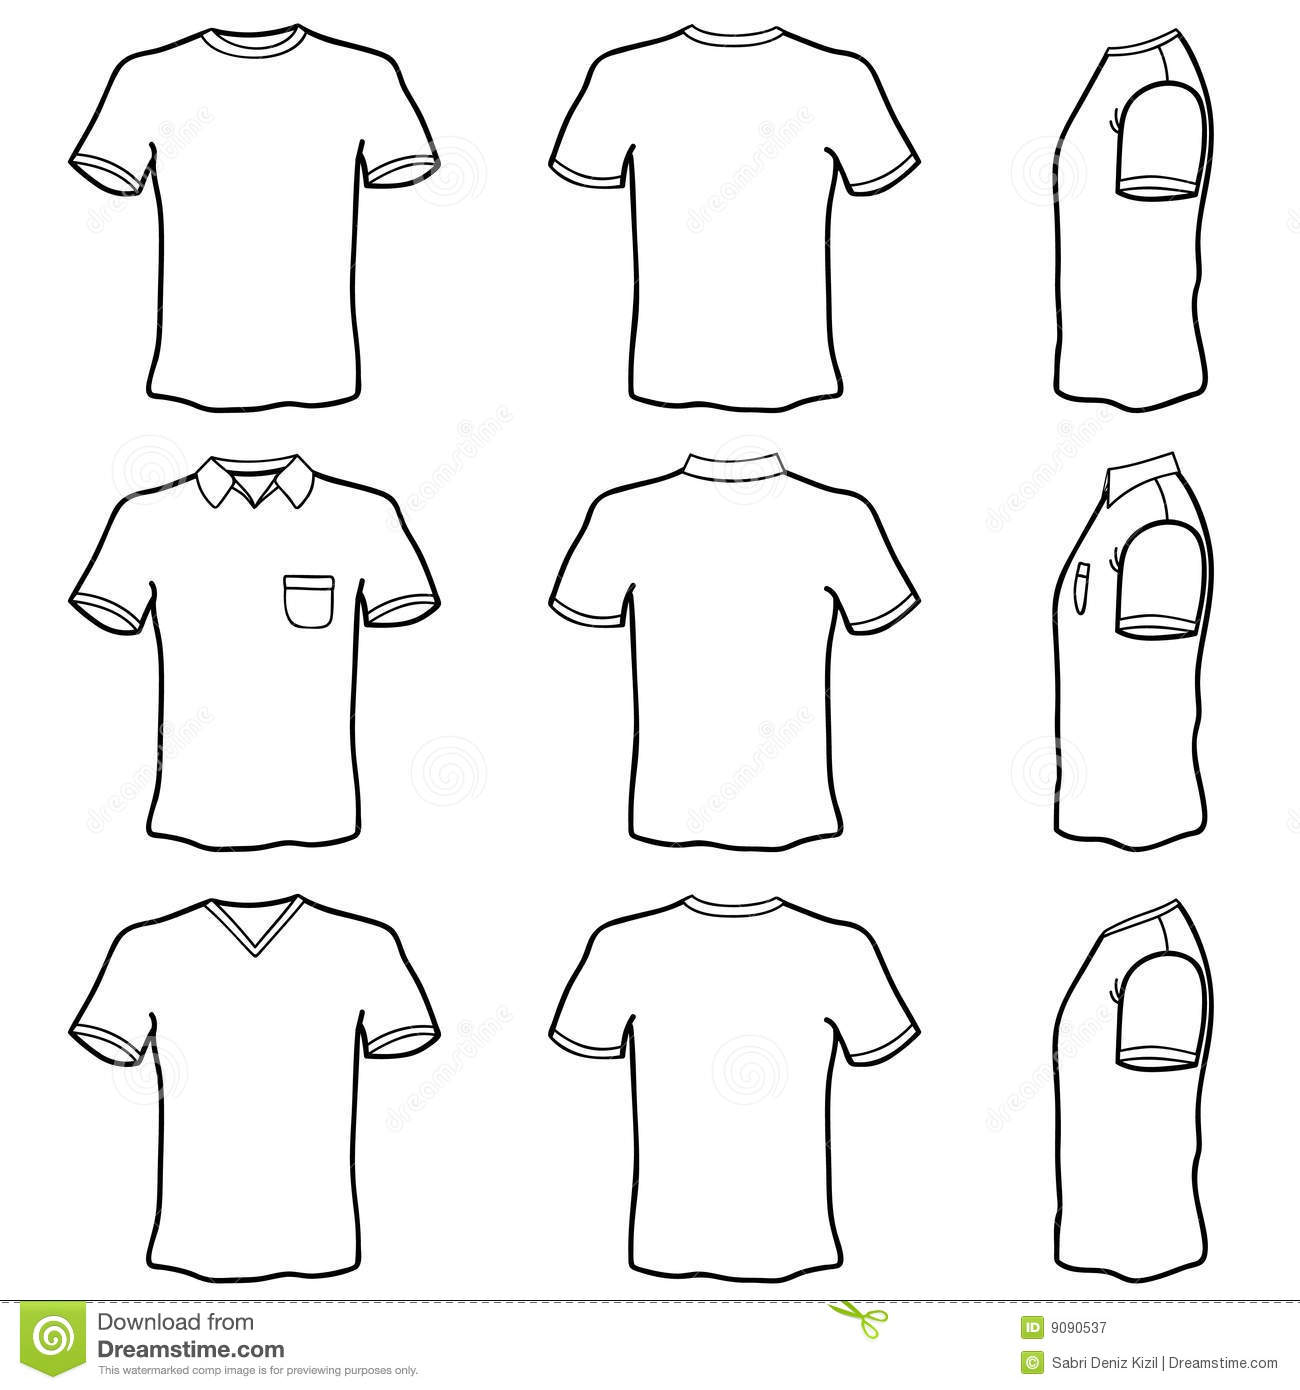 T shirt template set stock vector. Illustration of dress - 9090537